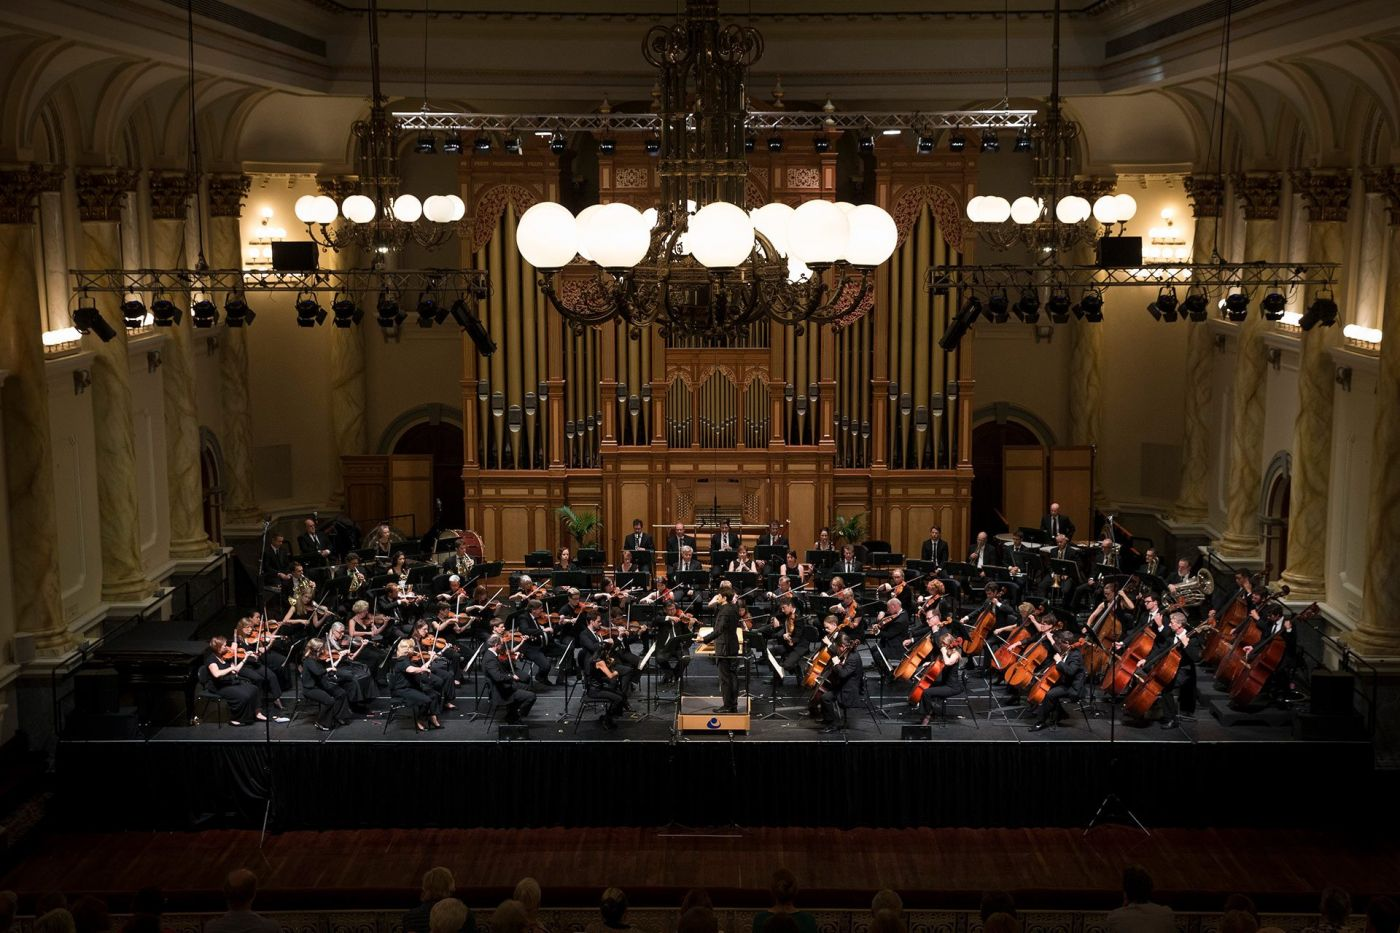 Adelaide Symphony Orchestra on stage at Adelaide Town Hall